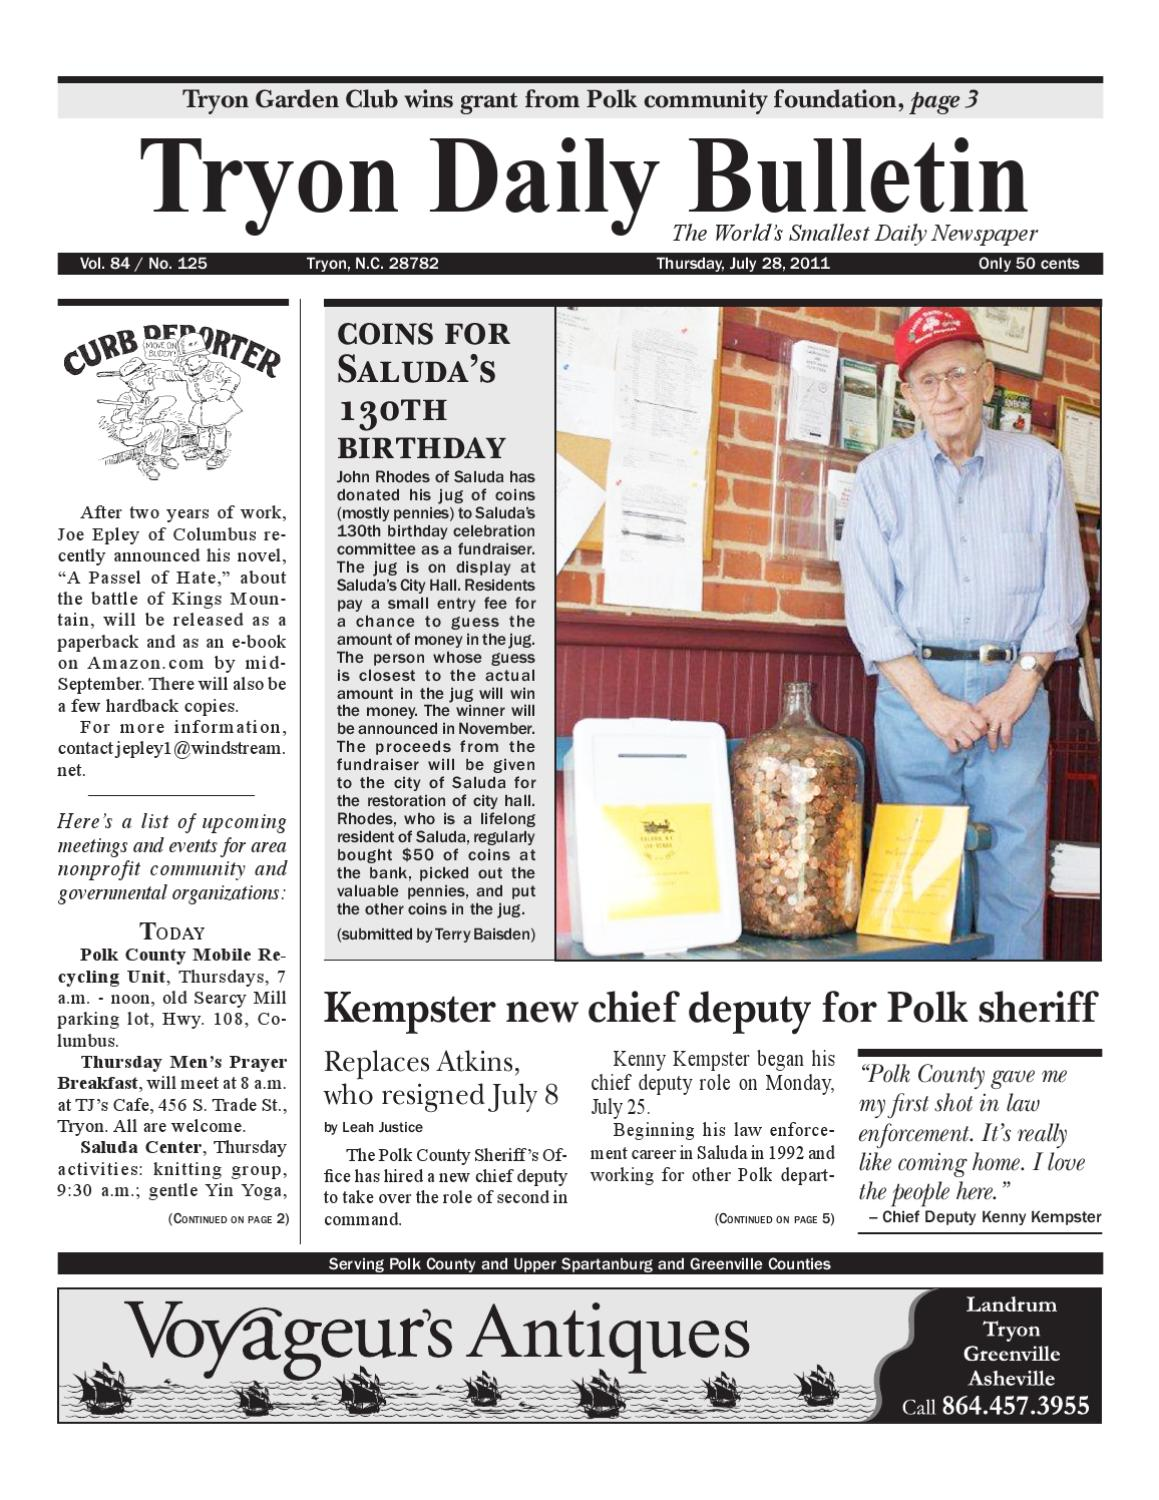 07-28-11 Daily Bulletin by Tryon Daily Bulletin - issuu